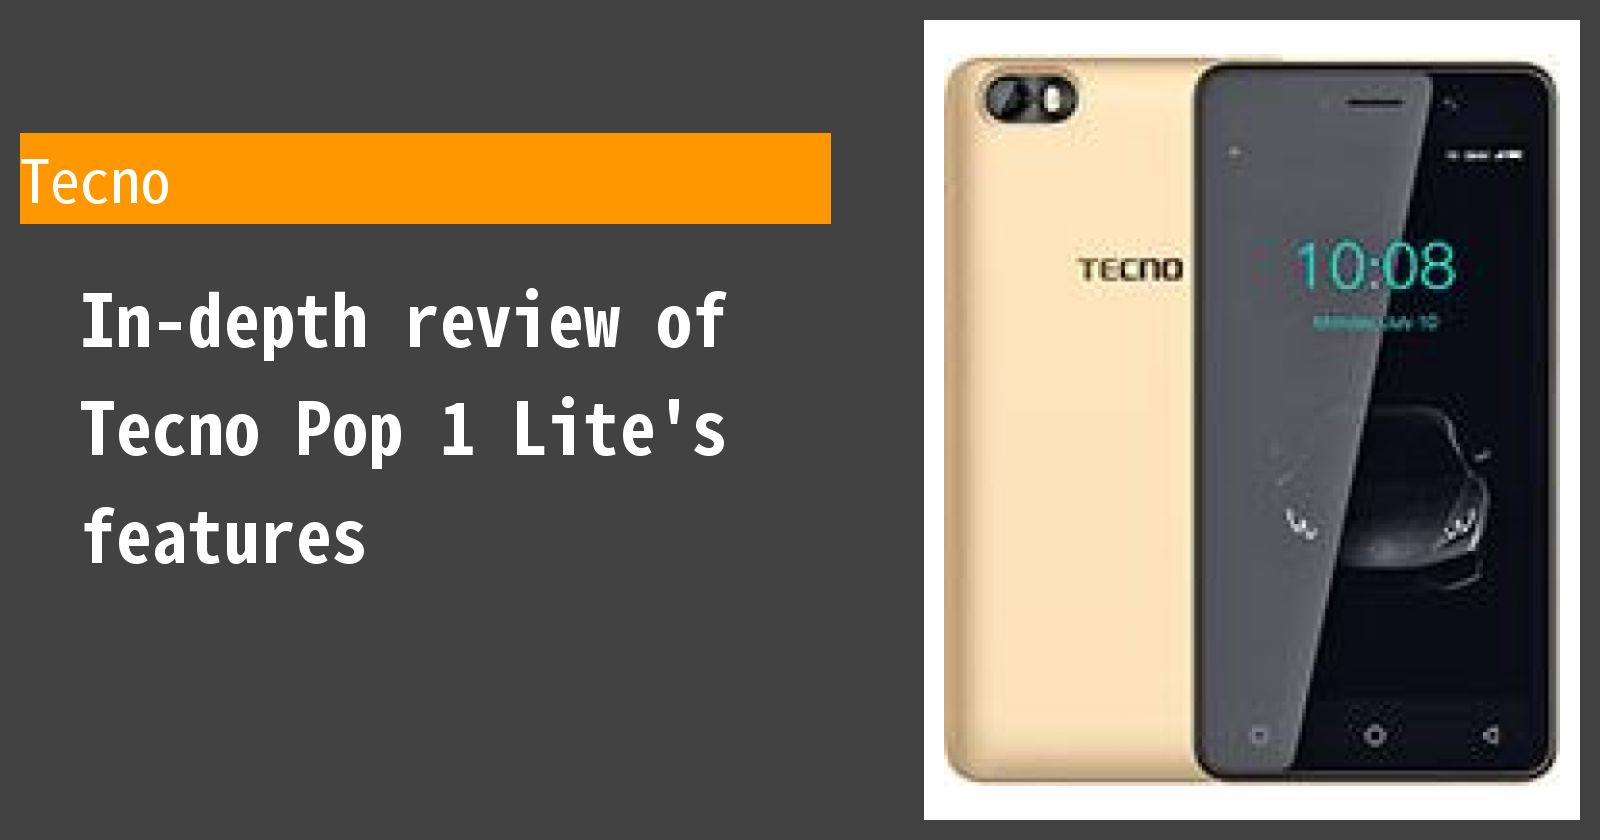 What are the advantages and disadvantages of Tecno Pop 1